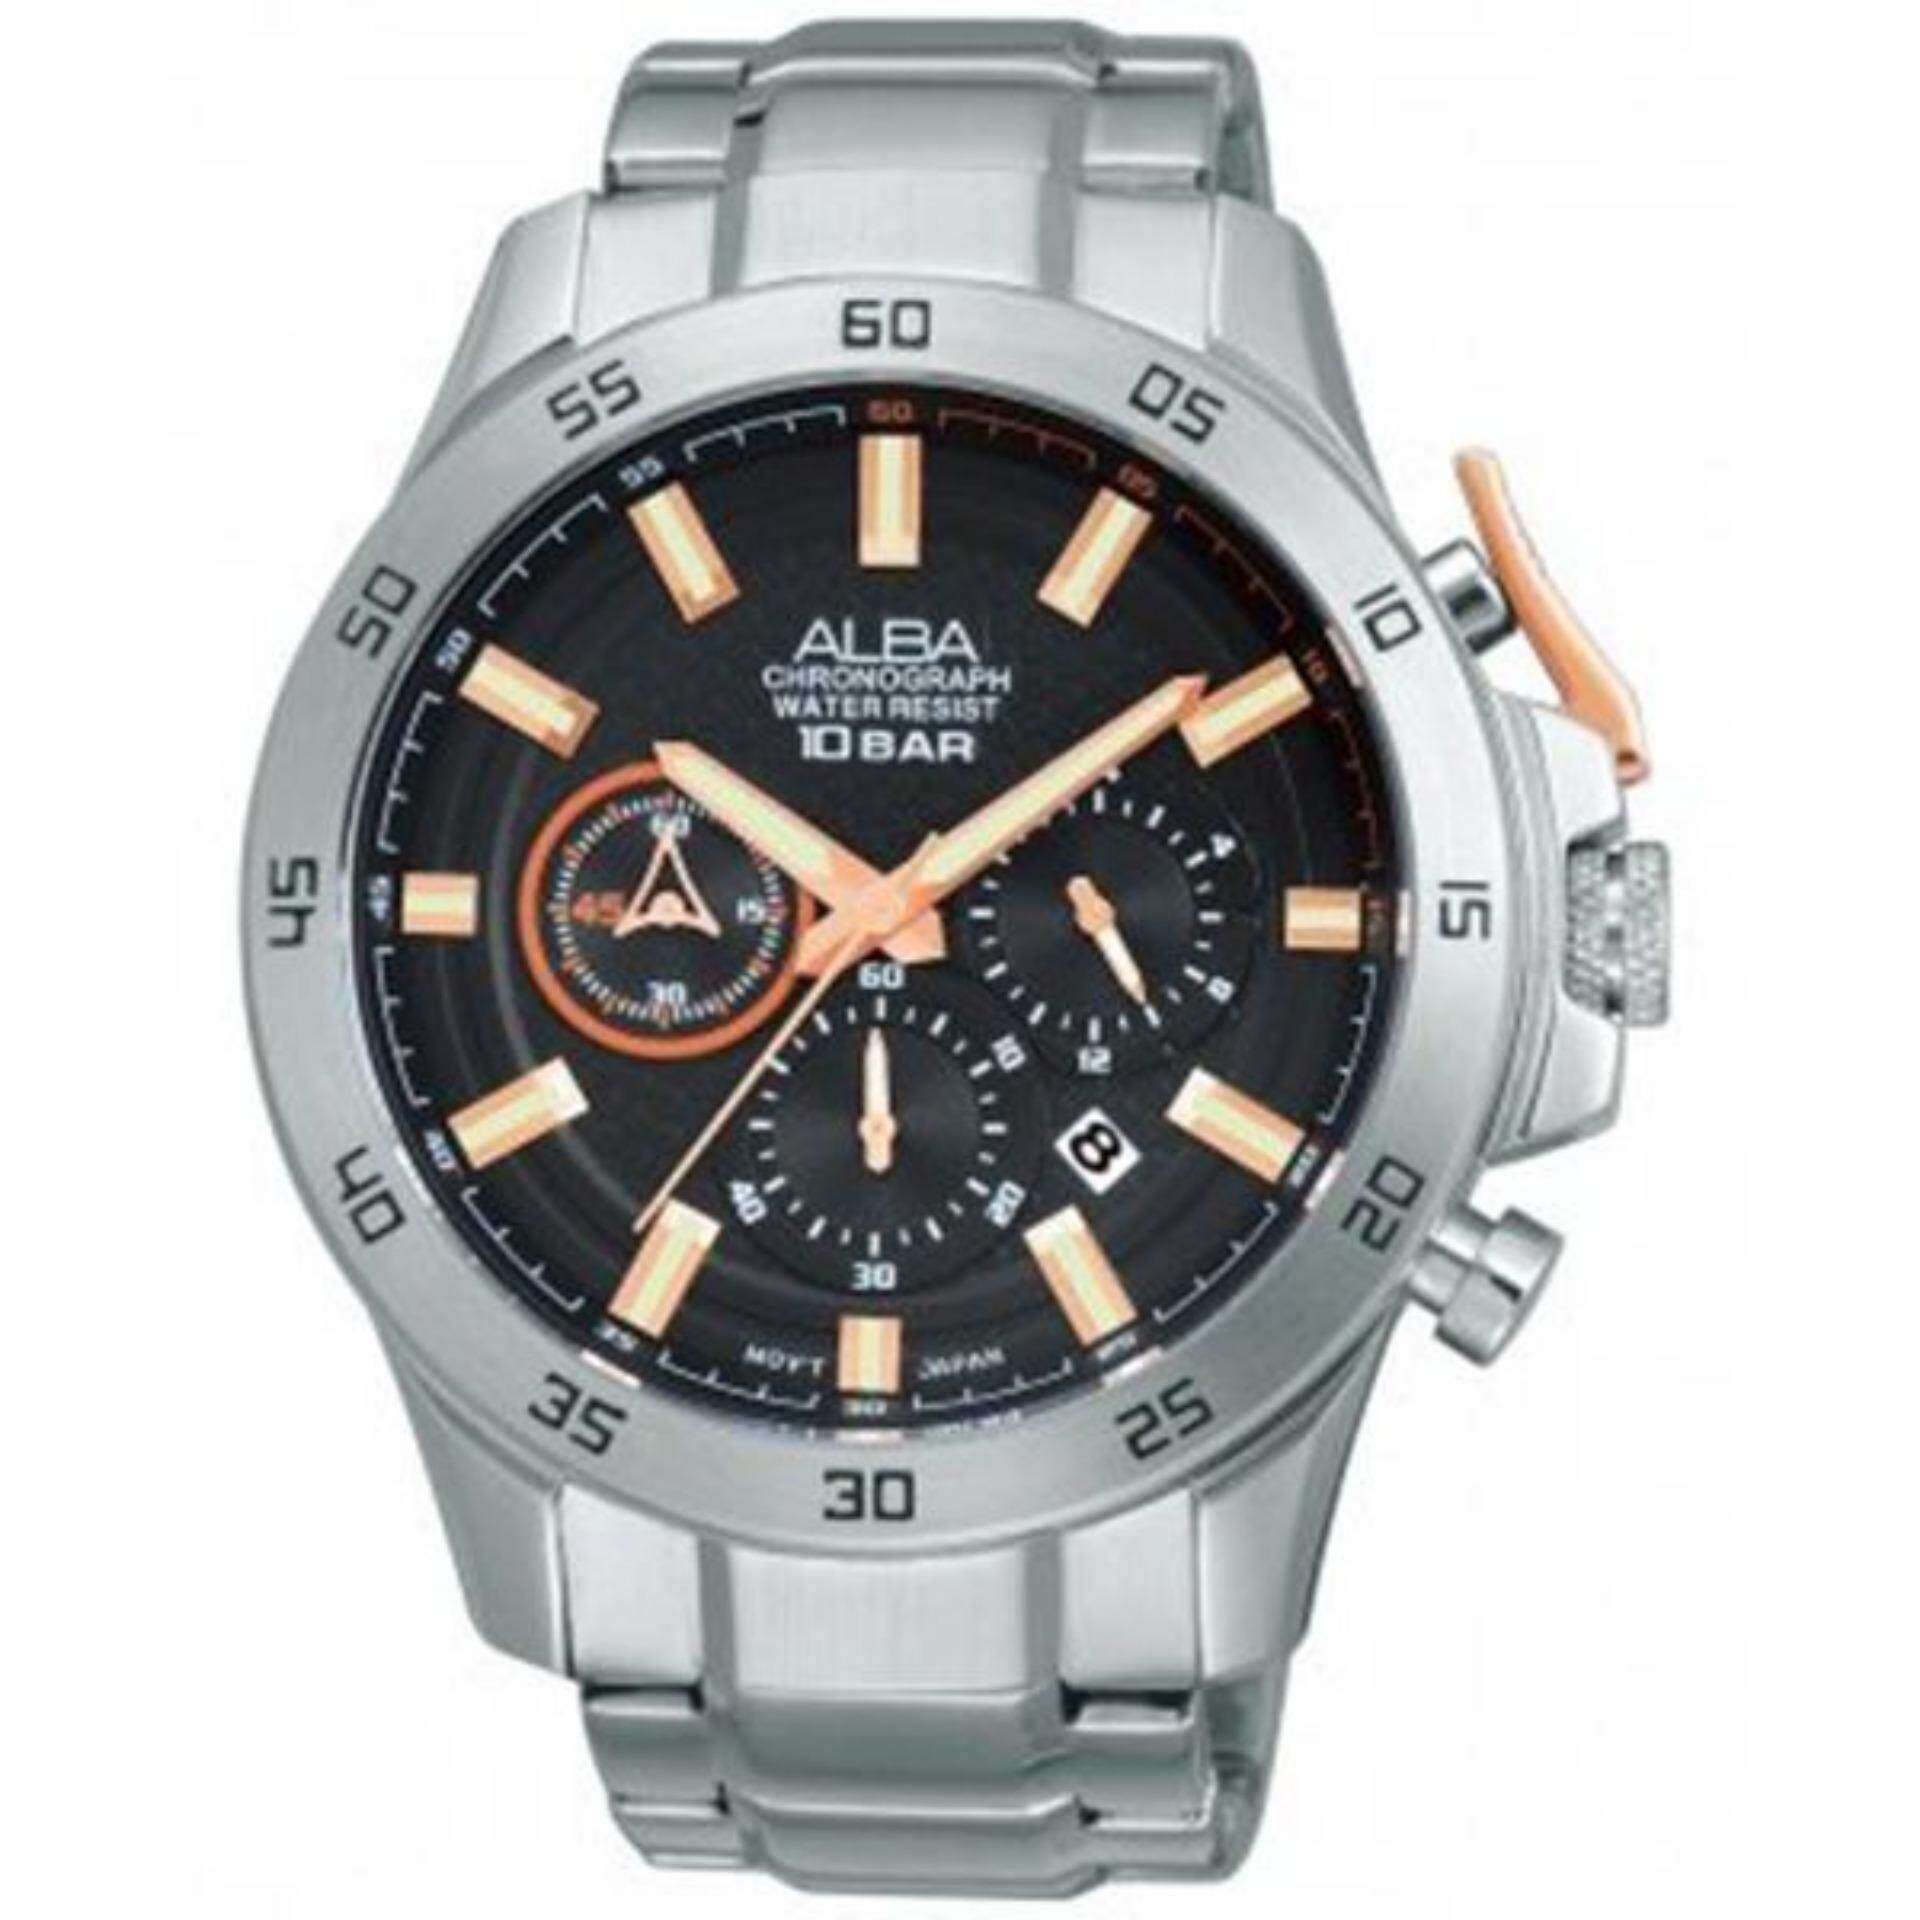 Alba Men Casual Watches Price In Malaysia Best Watch Elegant Chronograph At3657x1 Original1 Year Warranty